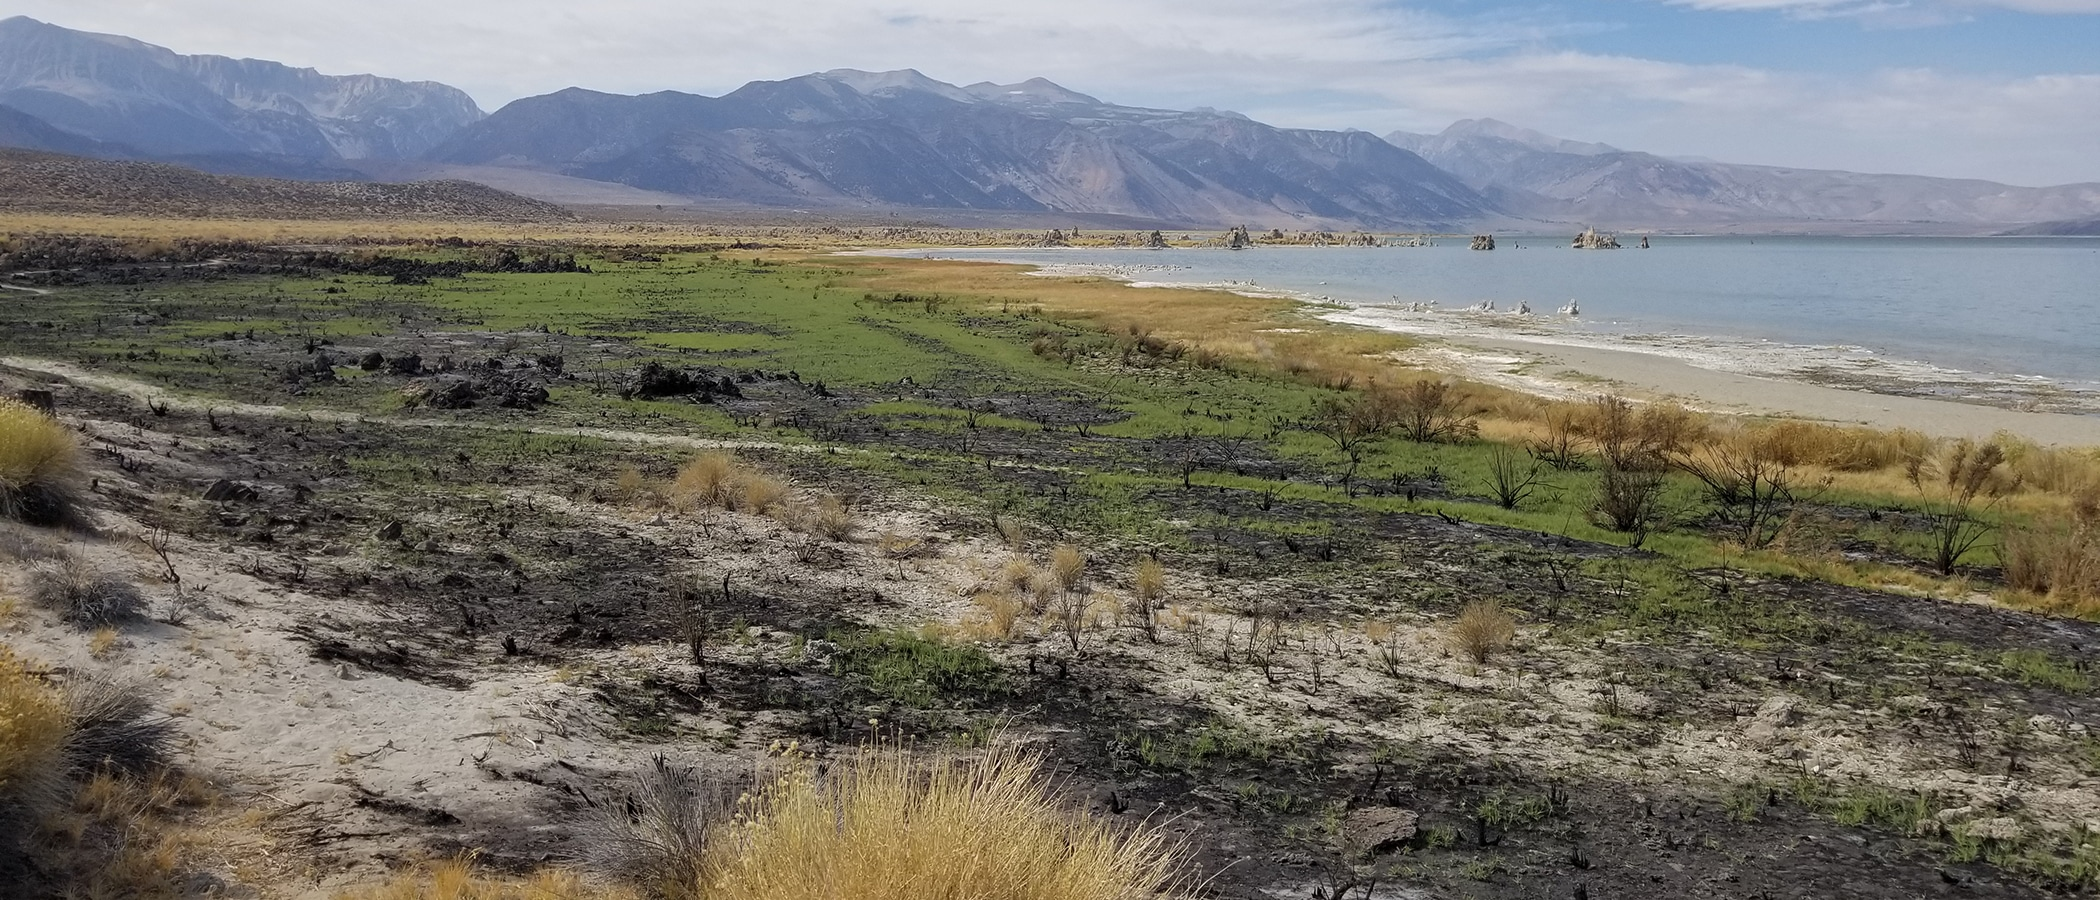 Turquoise waves wash up on the sandy colored shores of Mono Lake, and the landscape shifts from yellow grasses to bright green plants striped with darker rocky swaths. The Sierra Nevadas loom dark blue in the background.